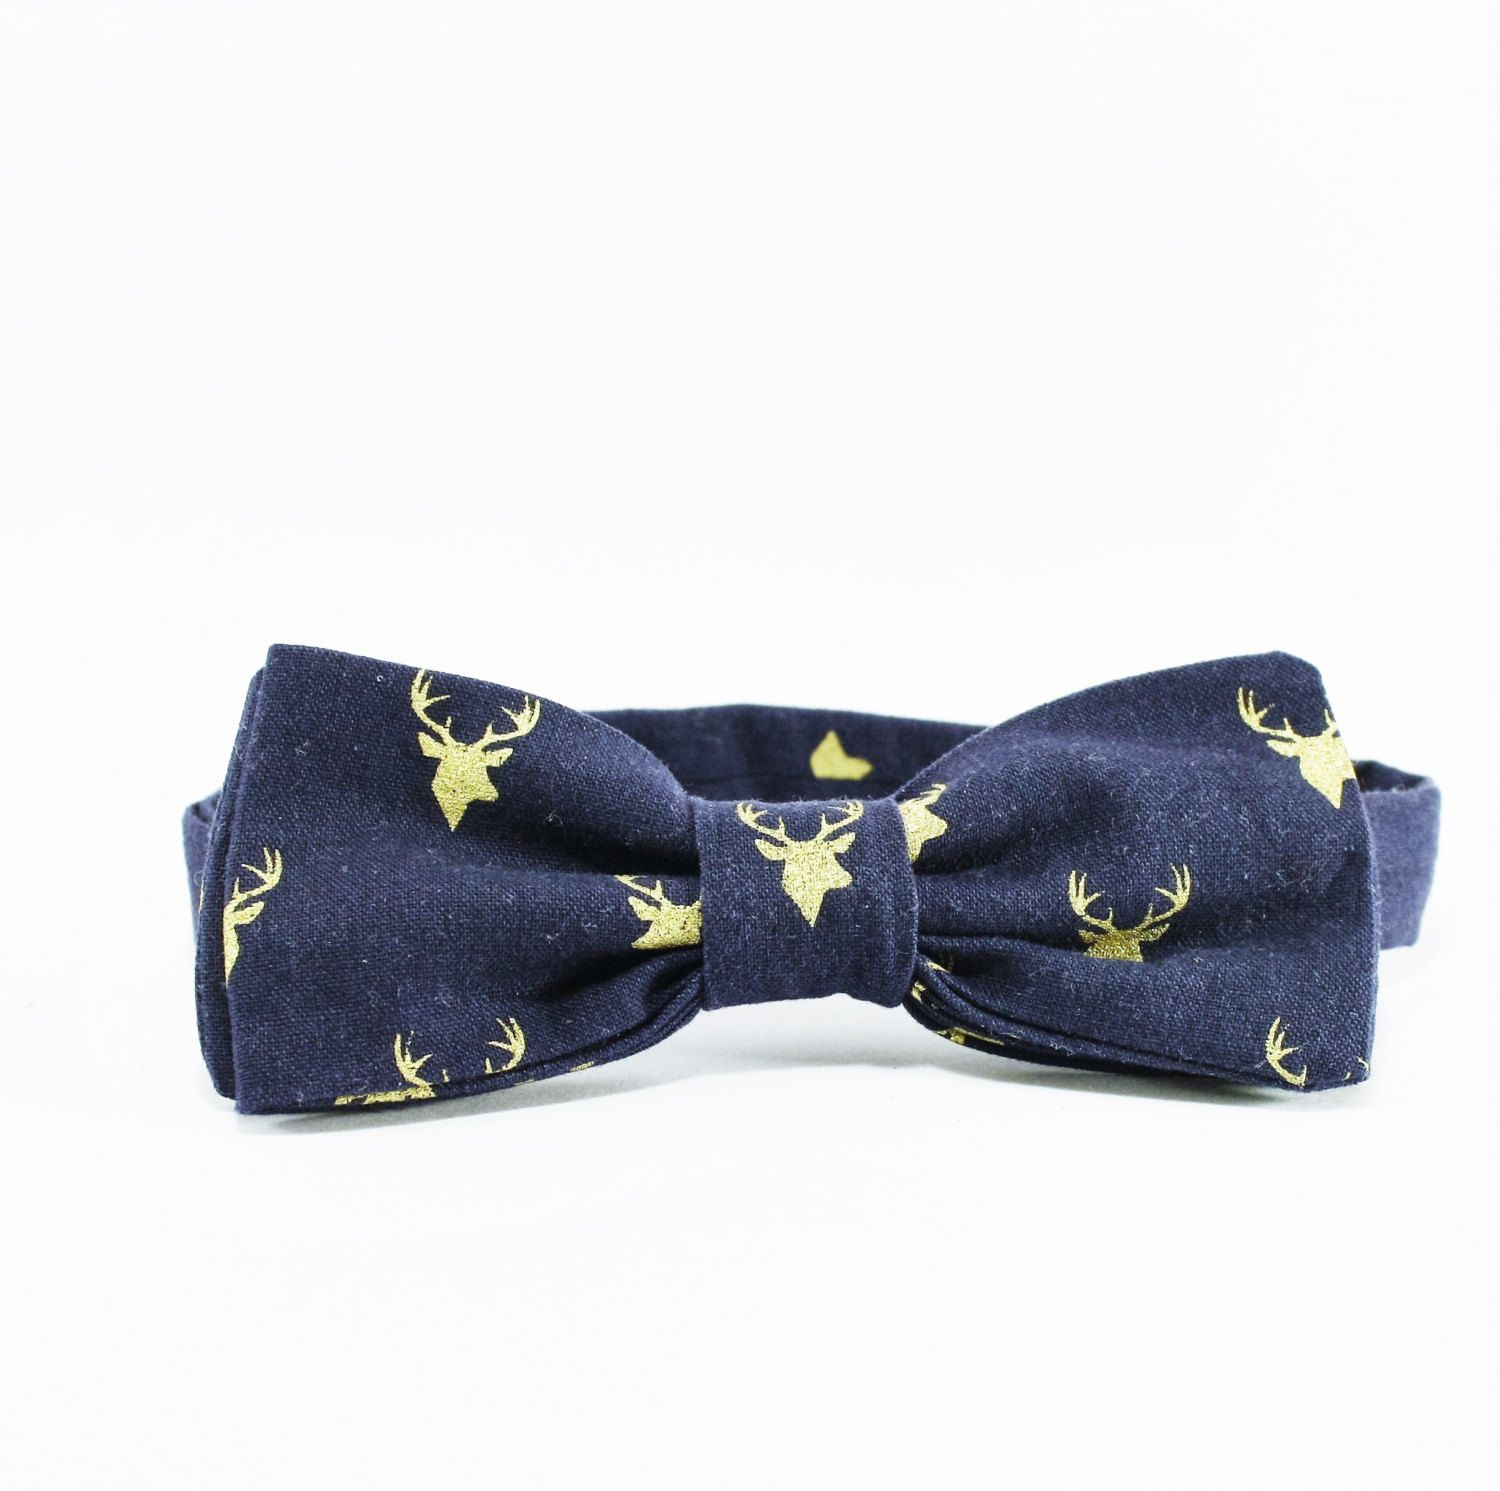 025688e6084e Navy Blue and Gold Deer Men's Bow Tie, Boy's Bow tie, Toddler, Boy, Teen,  Wedding Bow Tie, Formal wear, Adjustable Bowtie, Gold Antlers - pinned by  ...